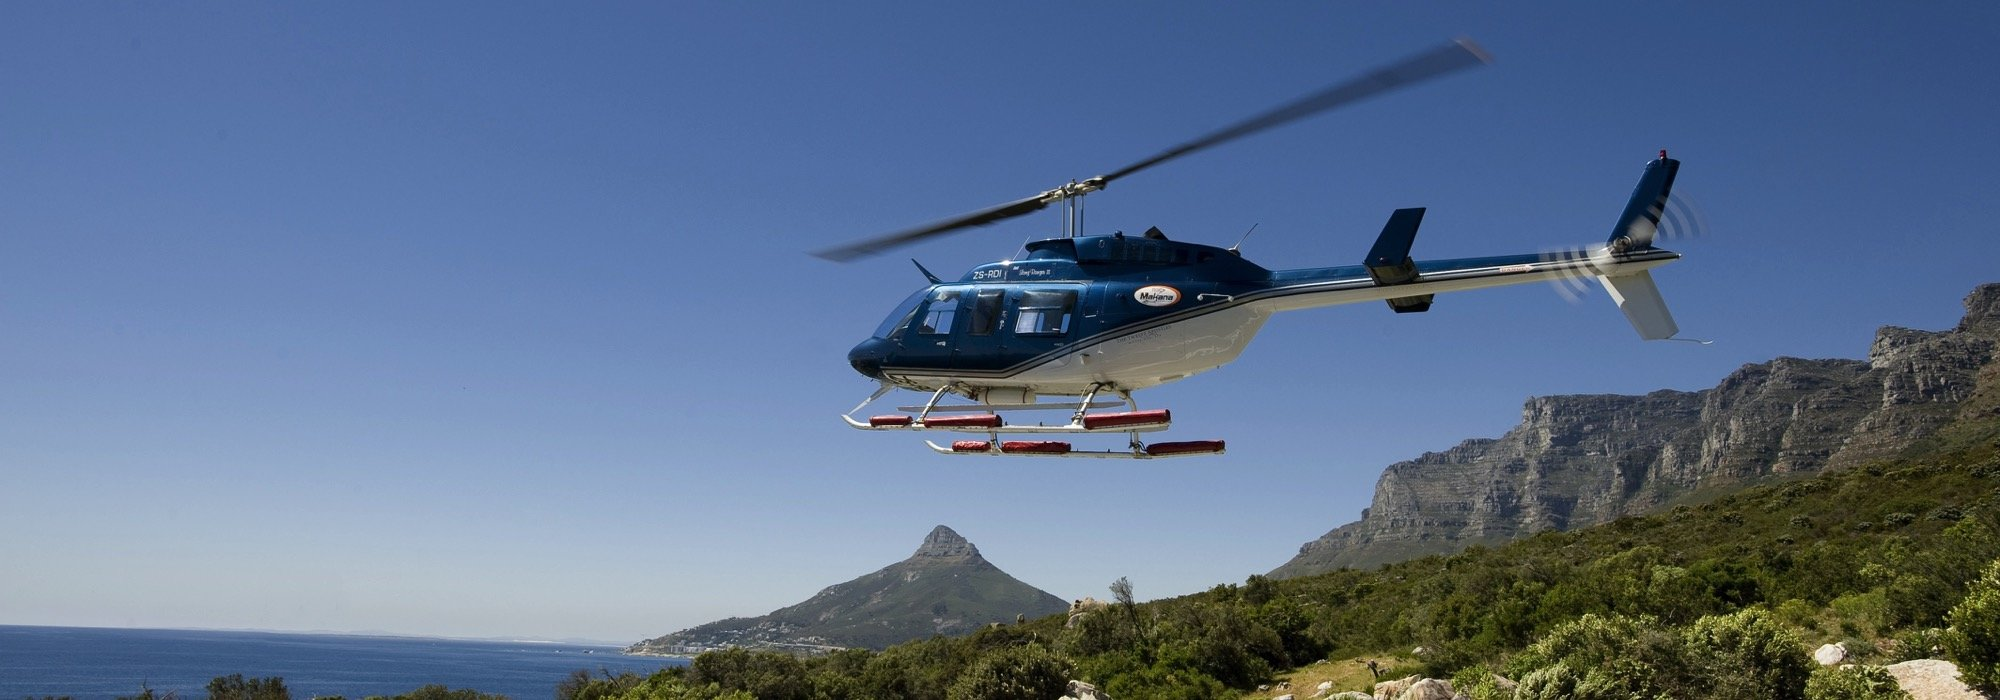 air mauritius helicopter with Platinum South Africa From 4998 on Activities Categories together with Top 10 Worst Aviation Accidents additionally Majestic South Africa additionally Great Barrier Reef Discovering Colorful Diversity furthermore Tauchurlaub Auf Den Malediven Hai Bilder Einmal Selbst Gemacht.